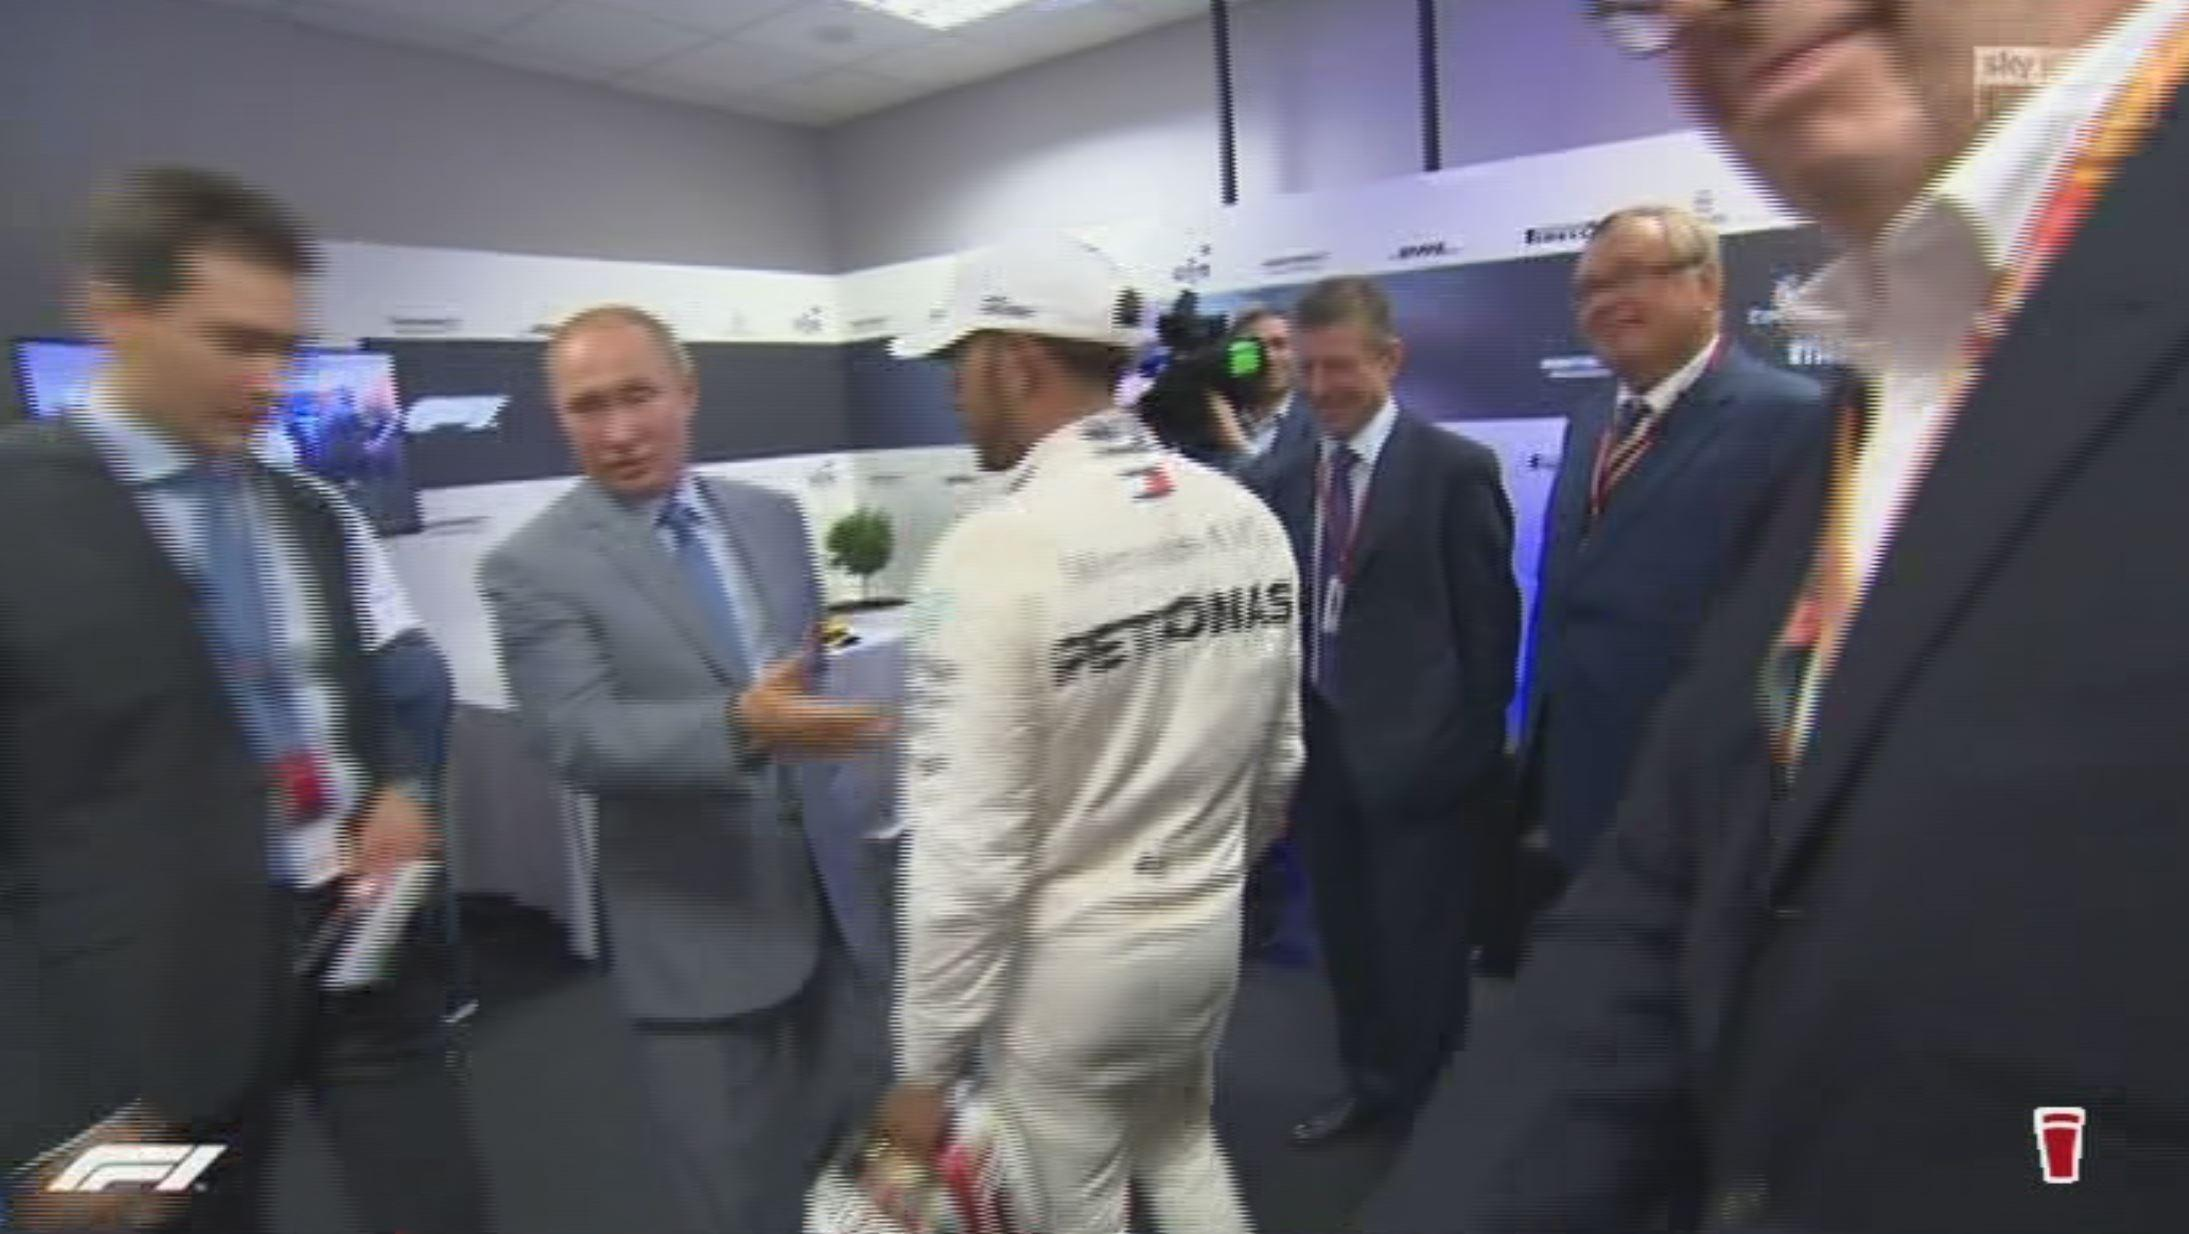 Vladimir Putin spoke to Lewis Hamilton through an interpreter